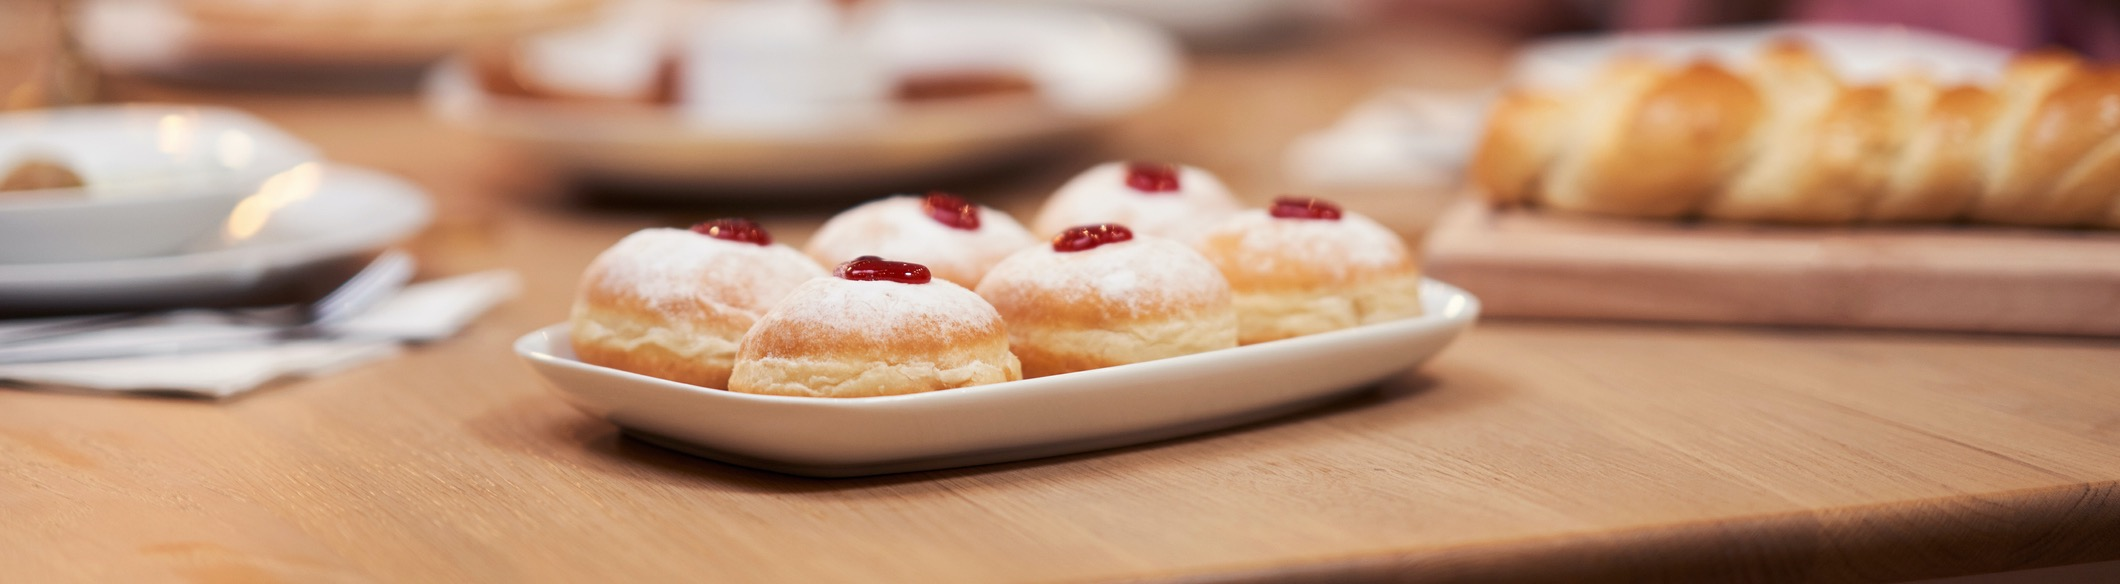 A plate of donuts with a cherry on top.